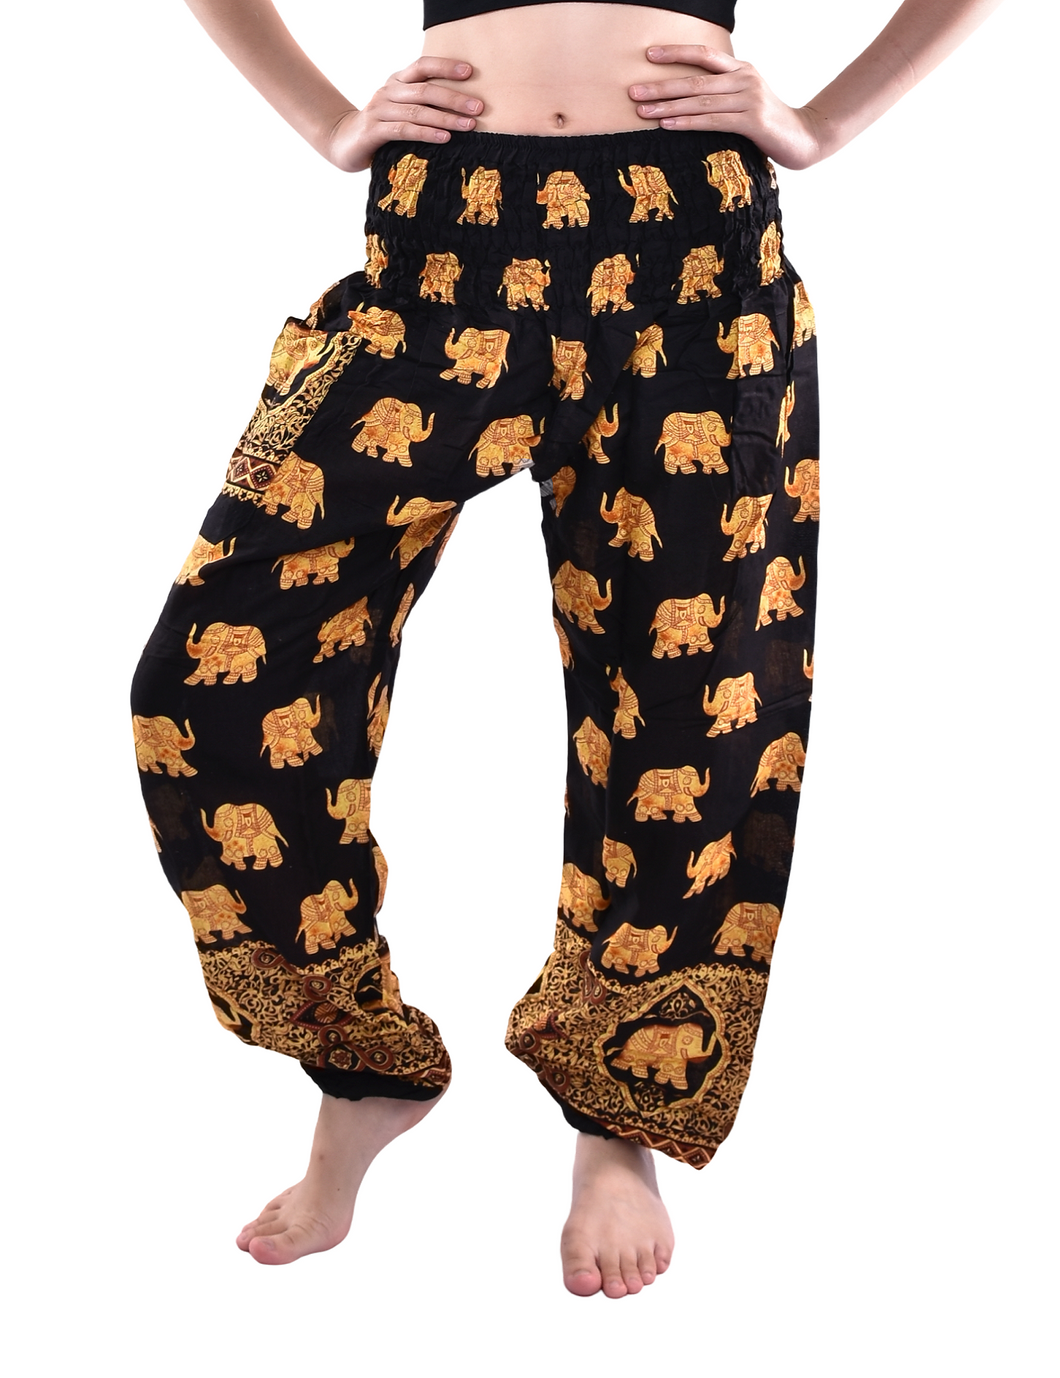 Bohotusk Royal Black Elephant Print Elasticated Smocked Waist Womens Harem Pants